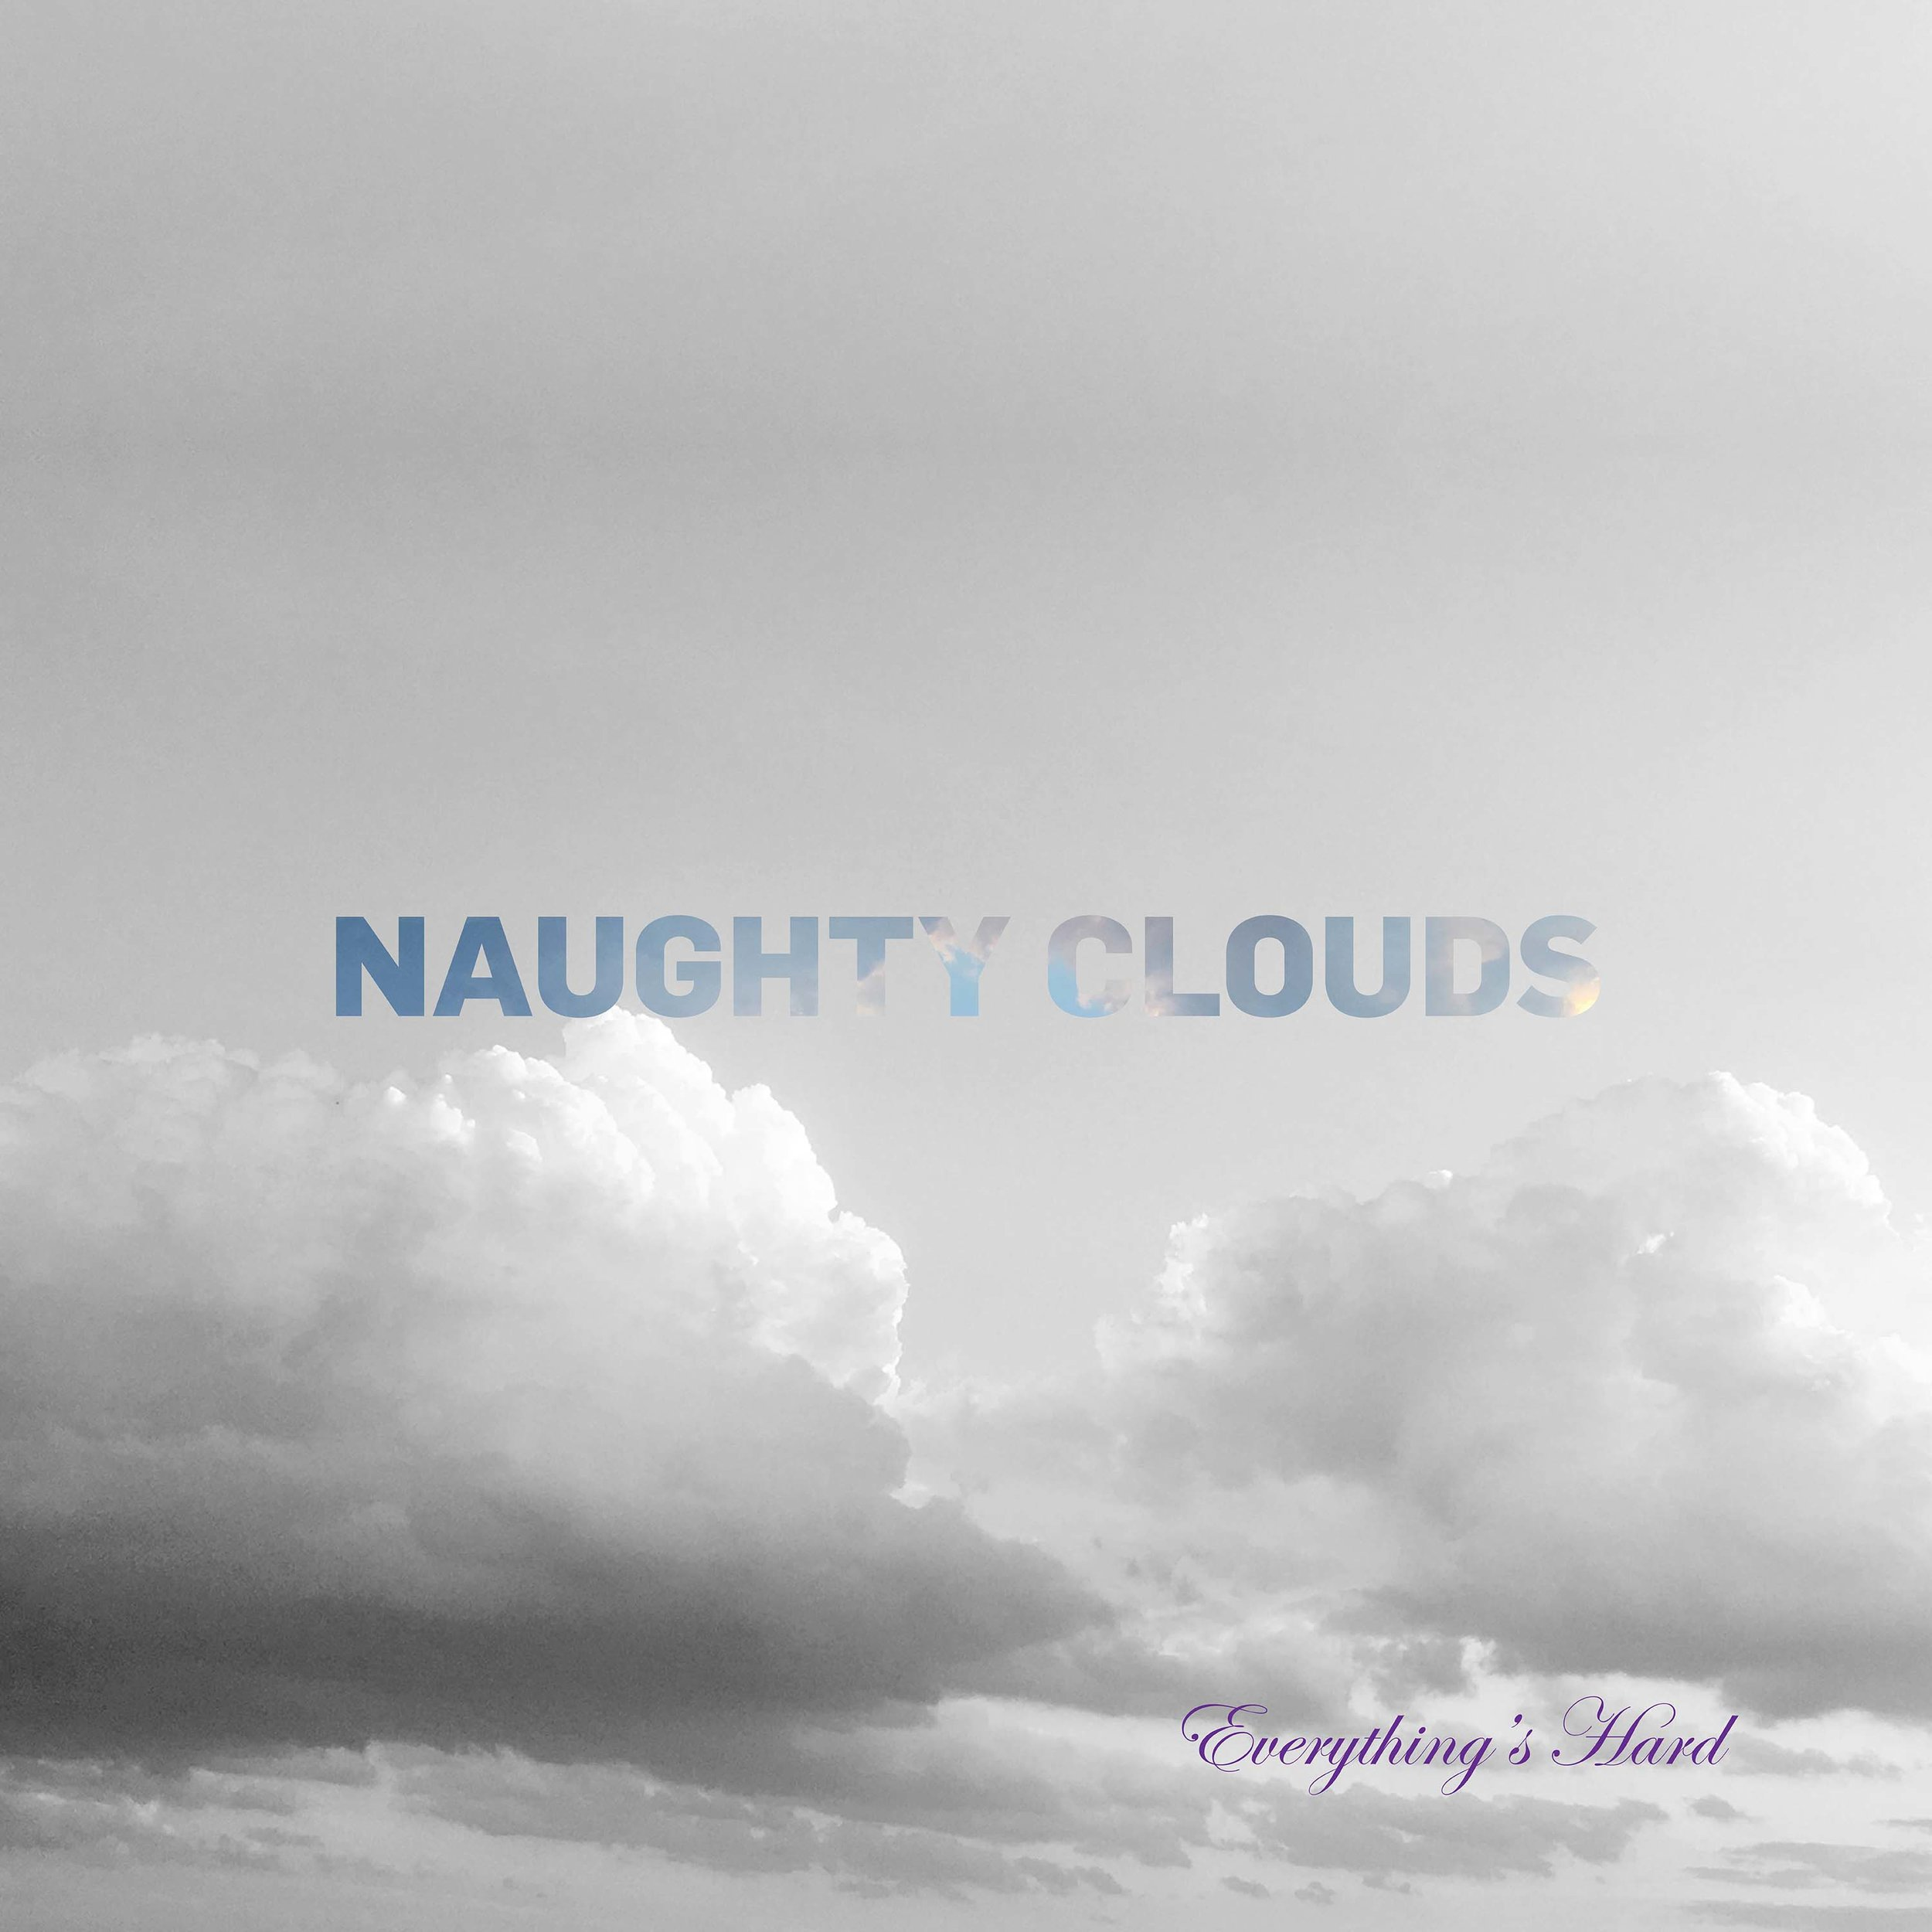 Naughty Clouds cover B_v1 (1).jpg